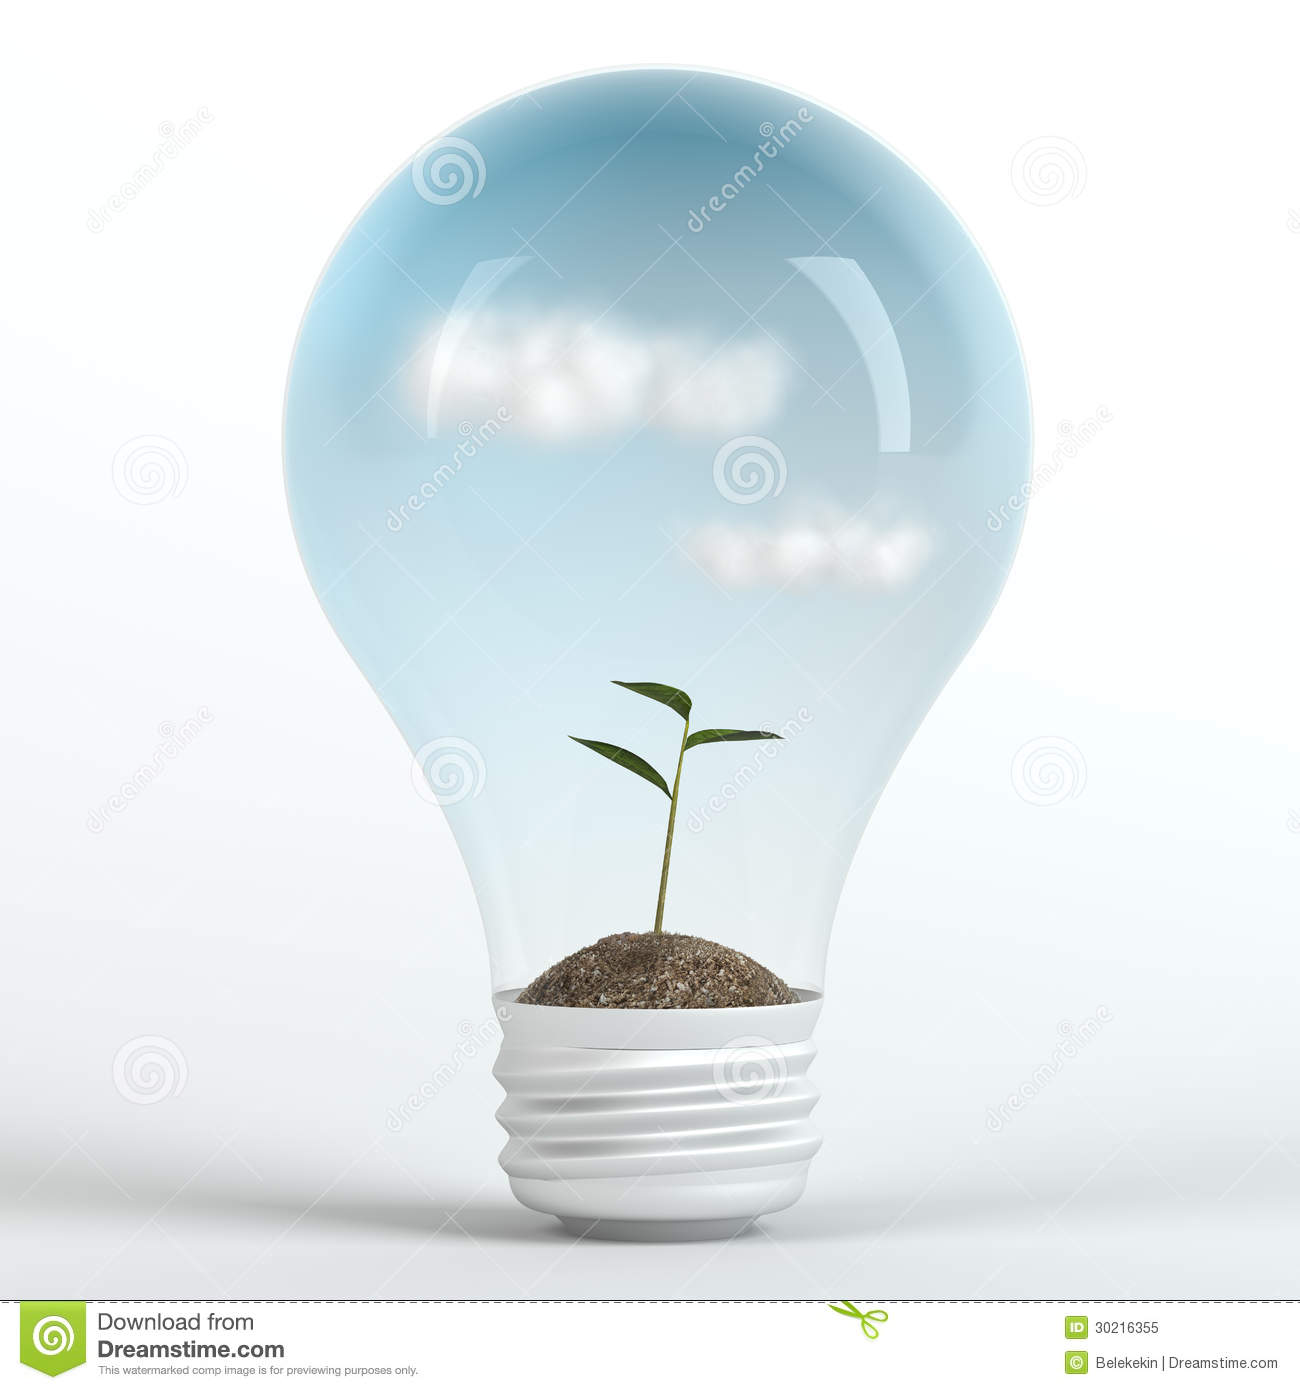 Eco Friendly Night Light Environmentally Friendly Energy Concept Royalty Free Stock